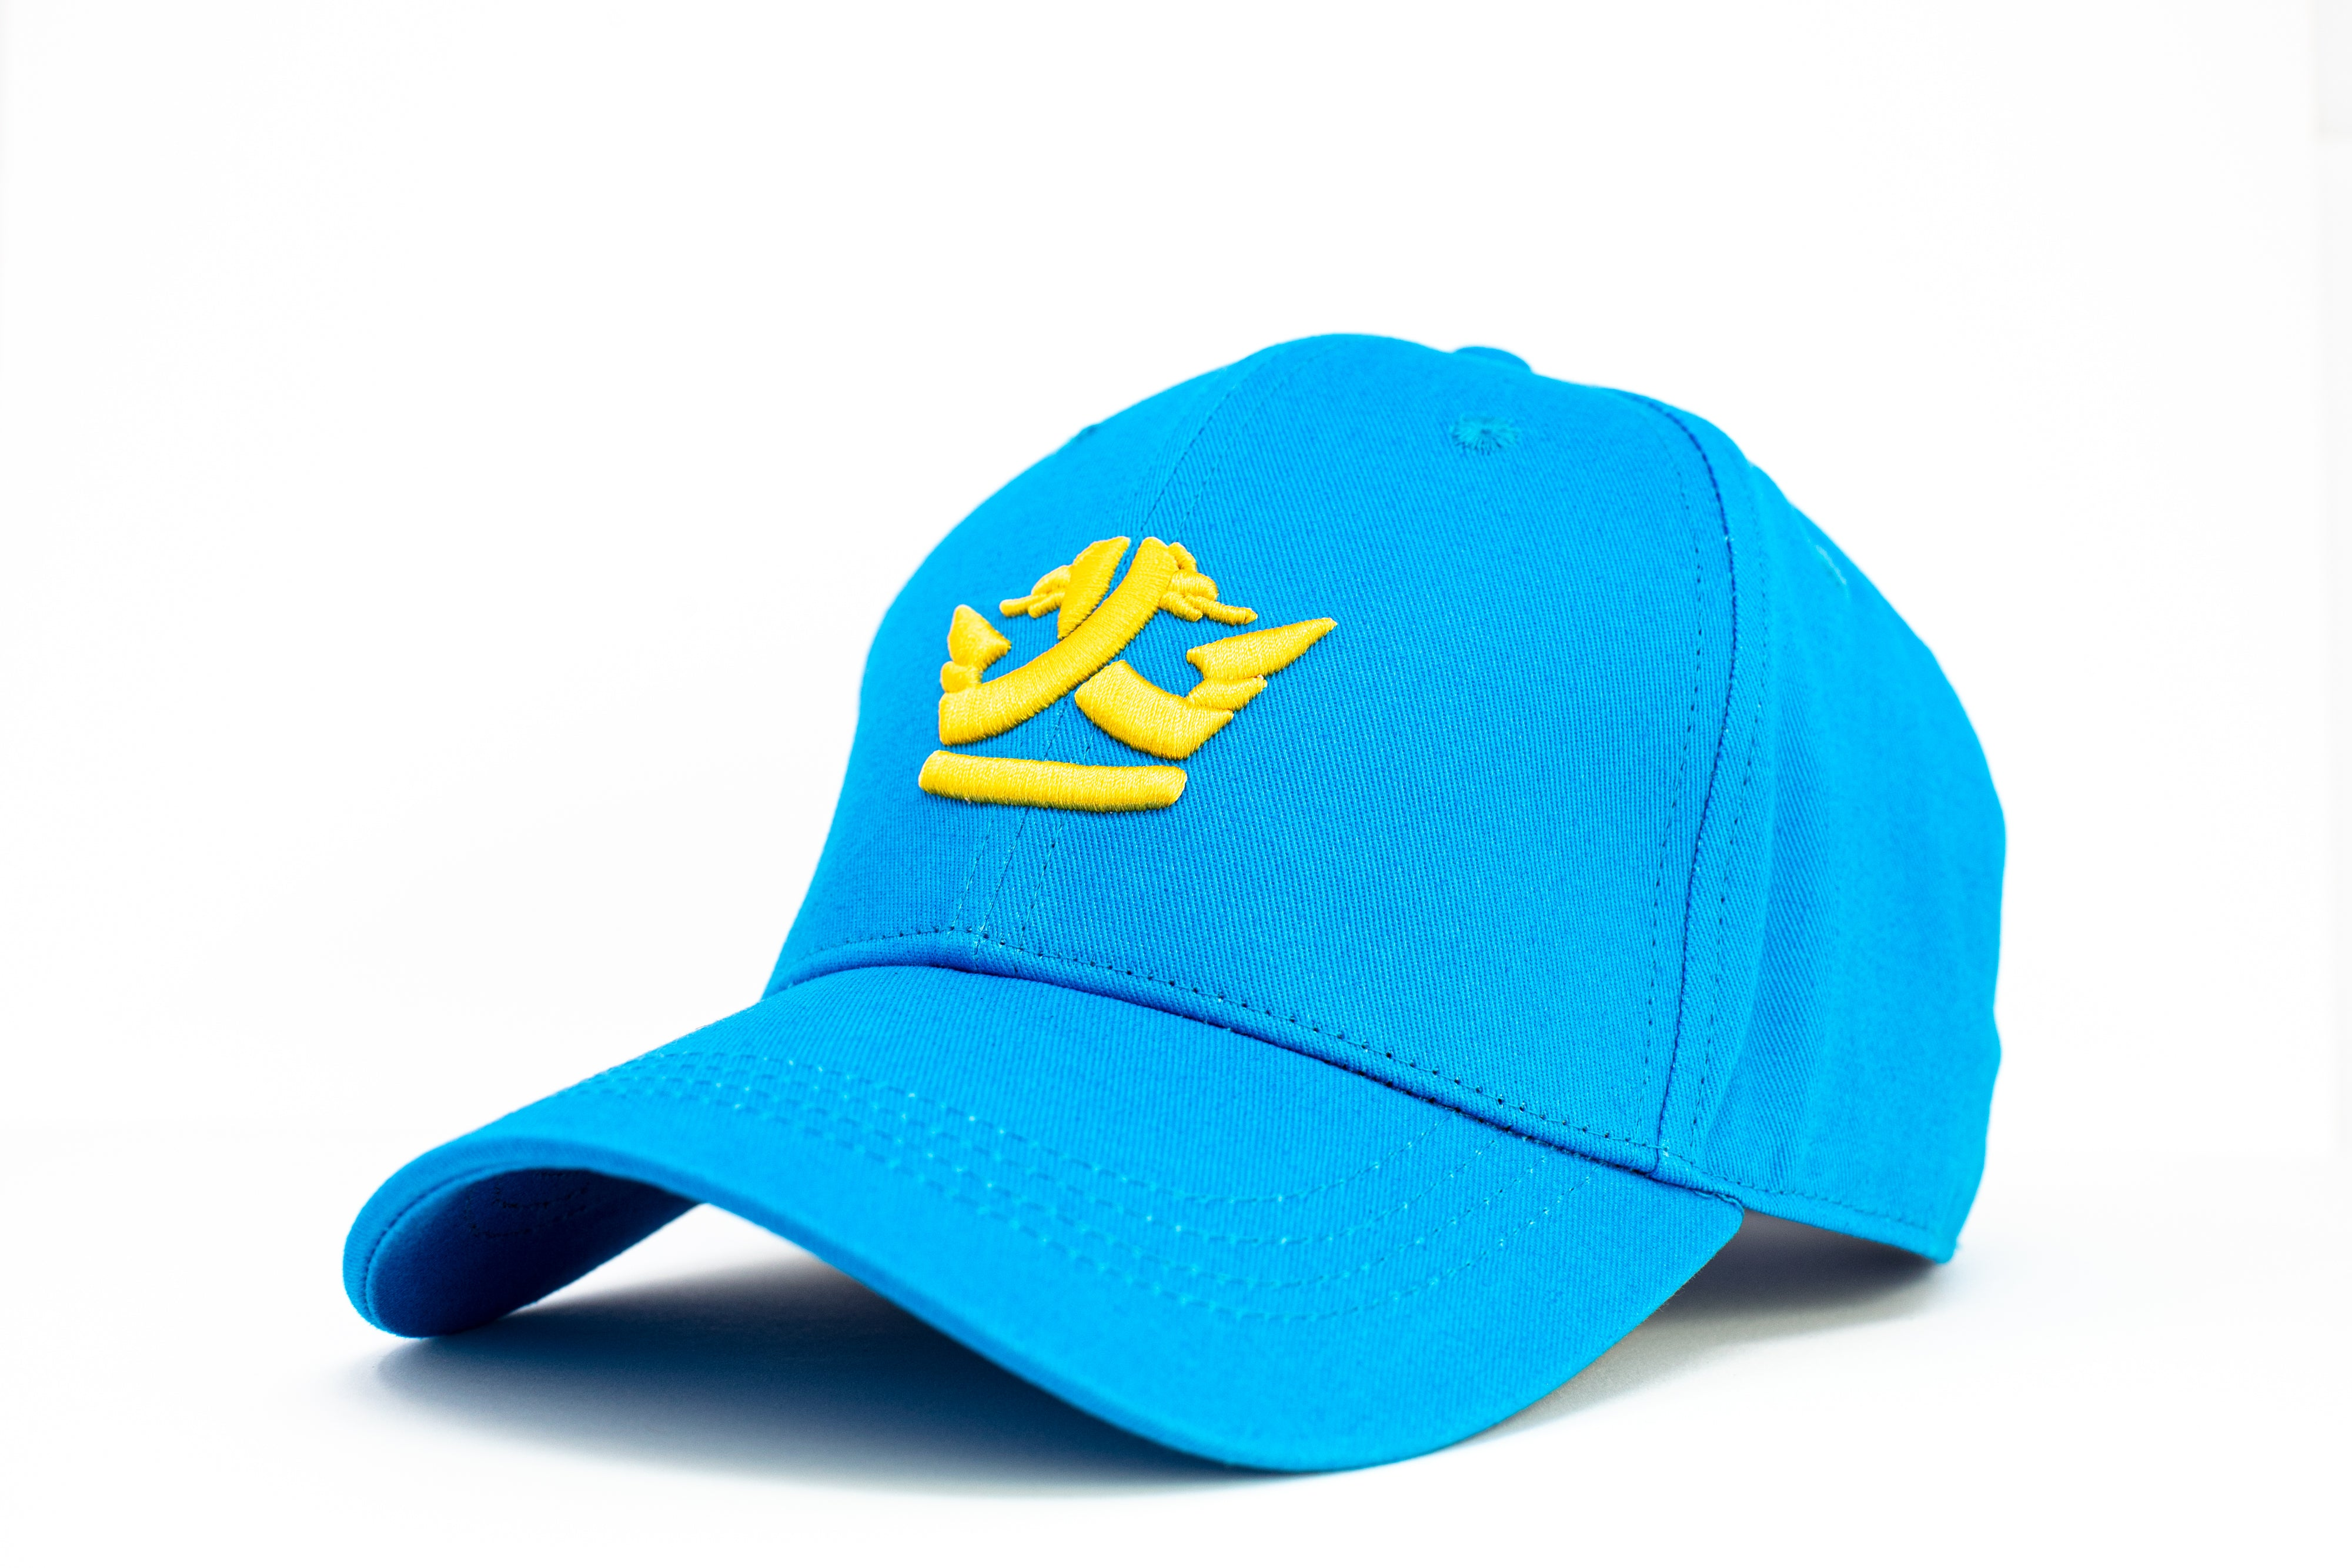 1st Edition Shq1pe Baseball Cap Blue